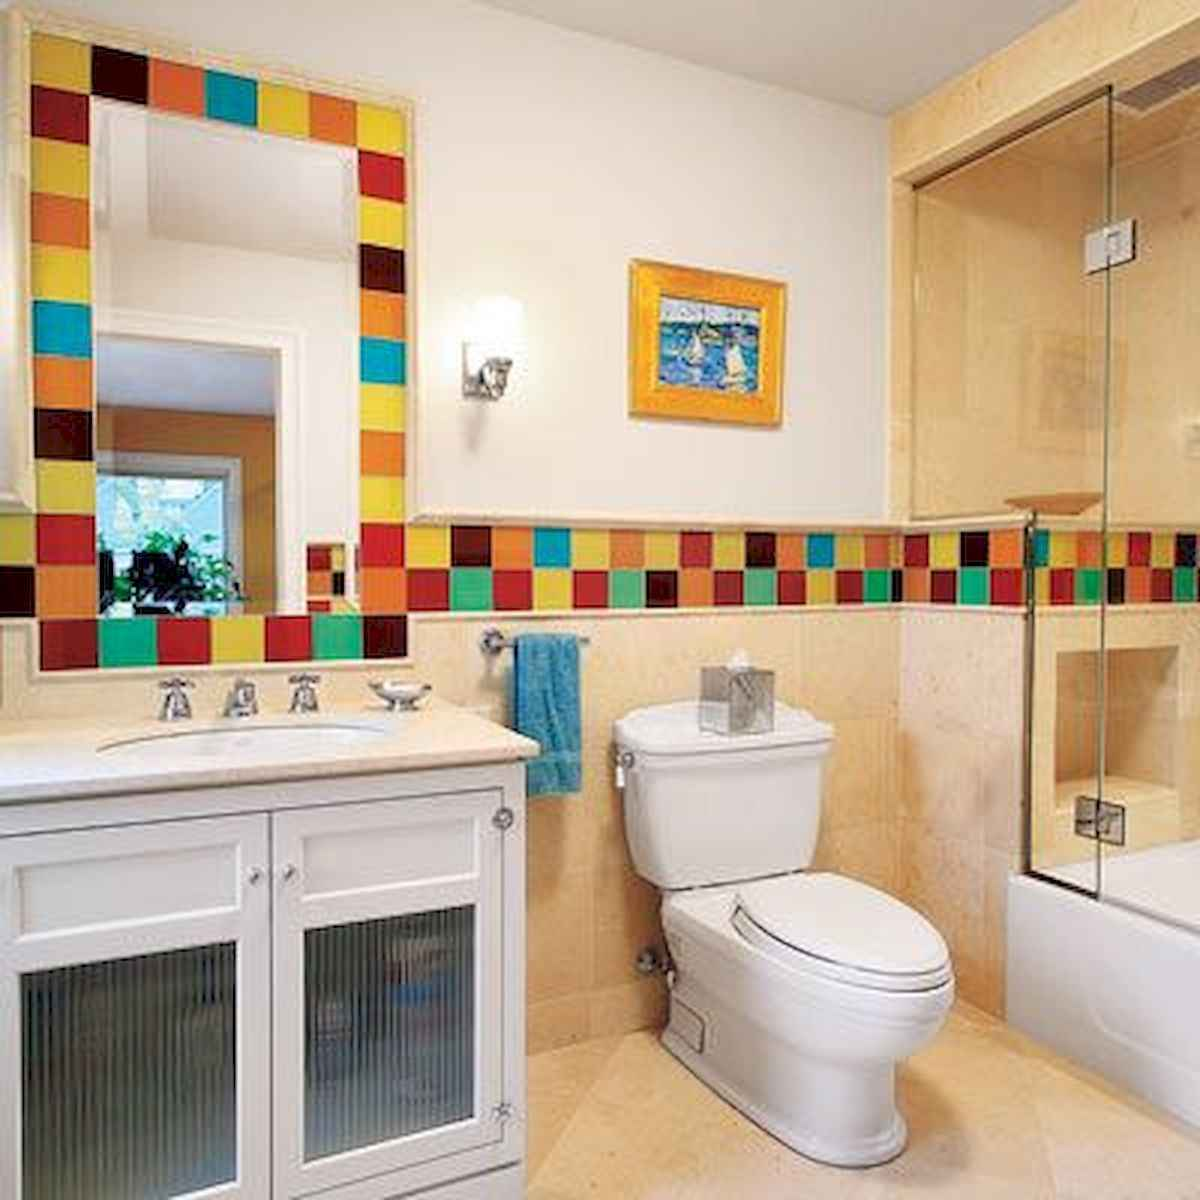 70+ Cool Colorful Bathroom Decor Ideas And Remodel for Summer Project (33)